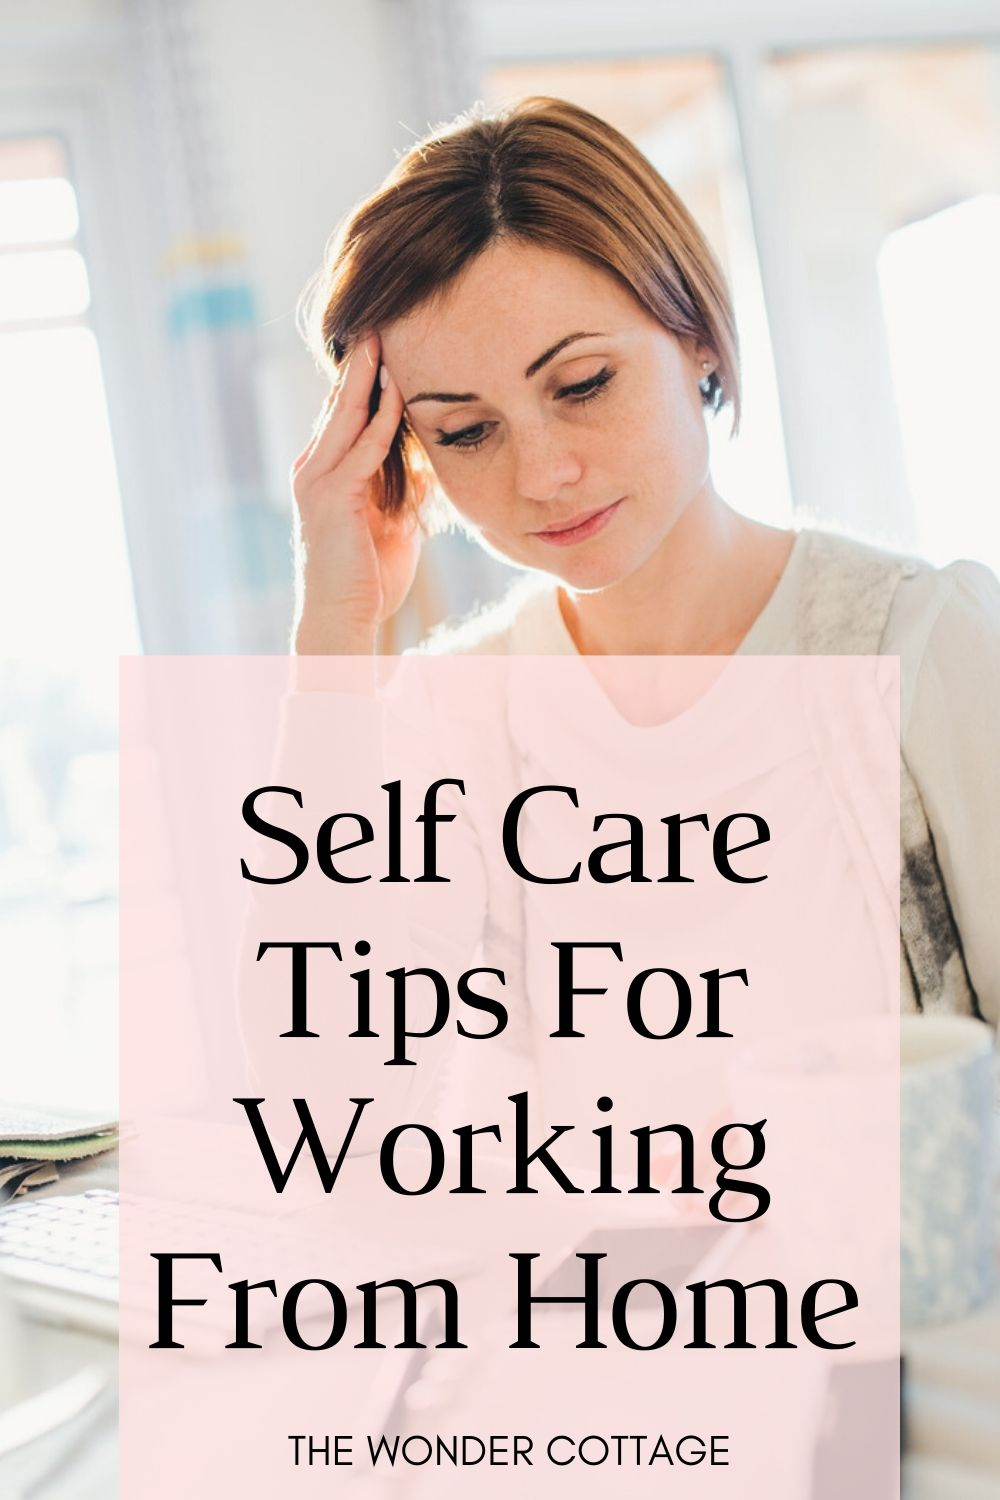 Self care tips for working from home